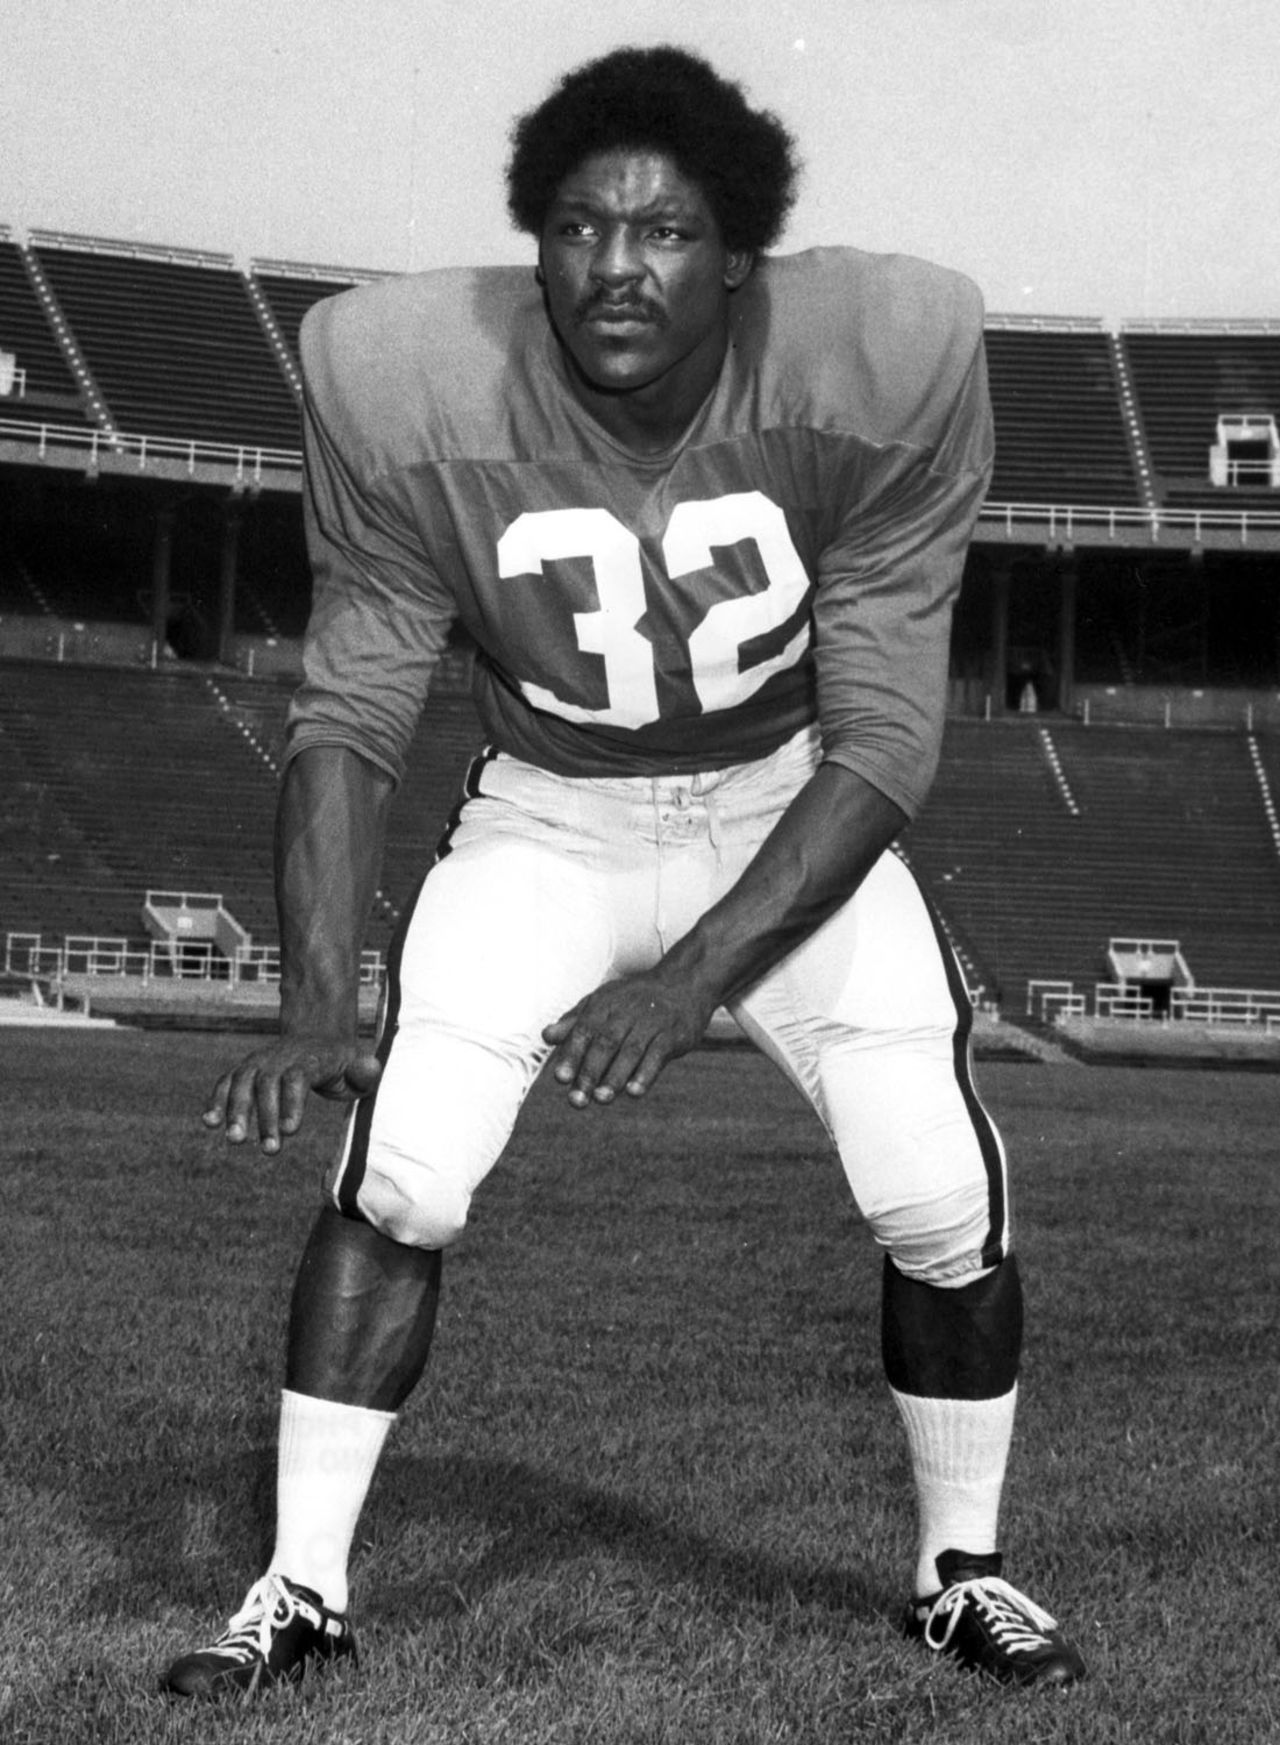 Honorable mention: Jack Tatum